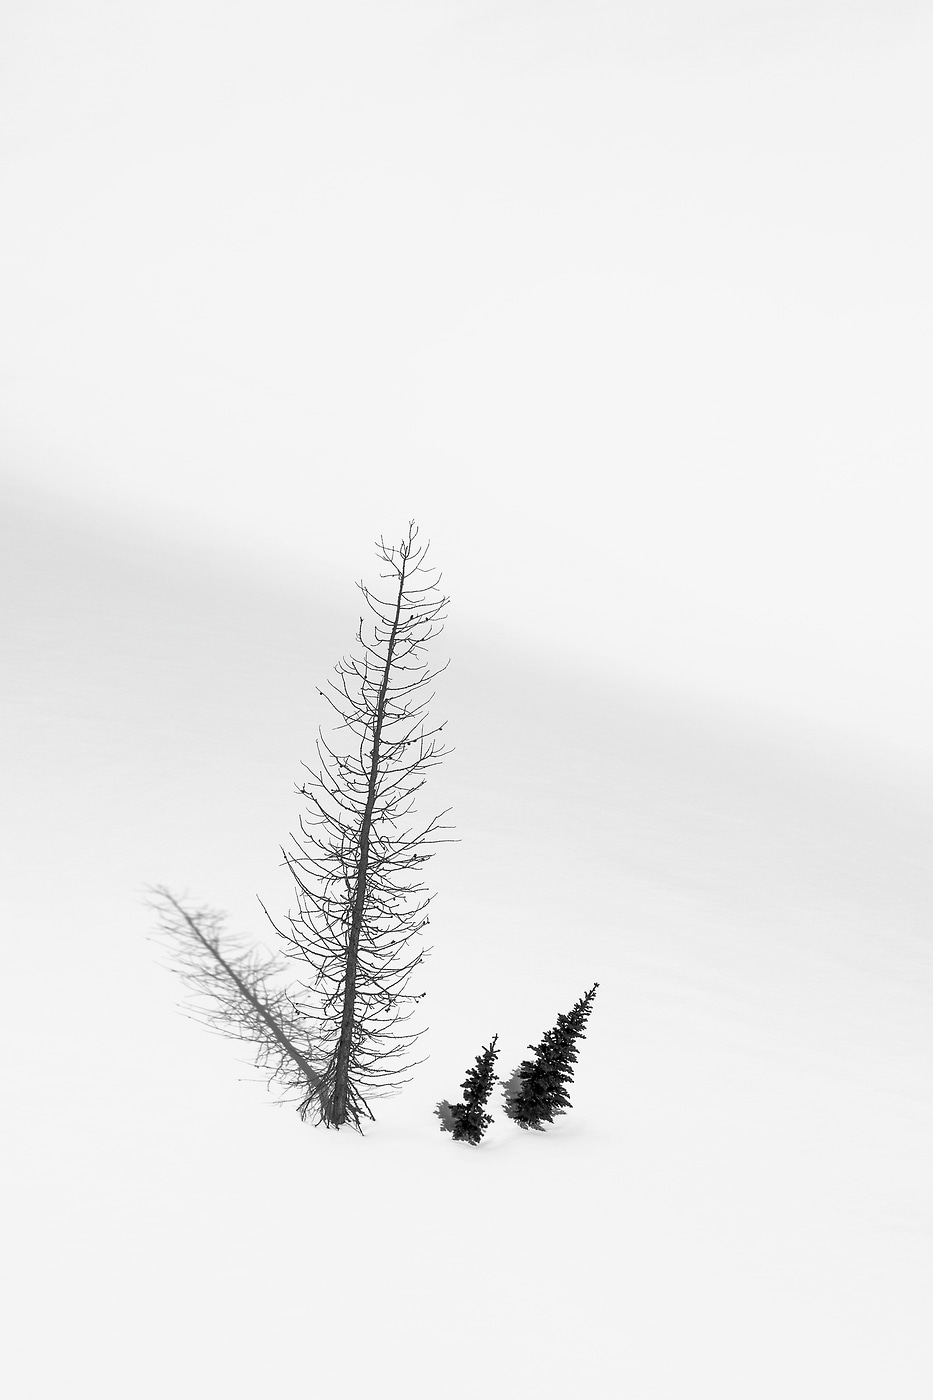 21 megapixels! A very high resolution, large-format VAST photo print of a lone set of trees in the snow on a mountain; photograph created by Scott Rinckenberger in Bannock Mountain, Glacier Peak Wilderness, Washington